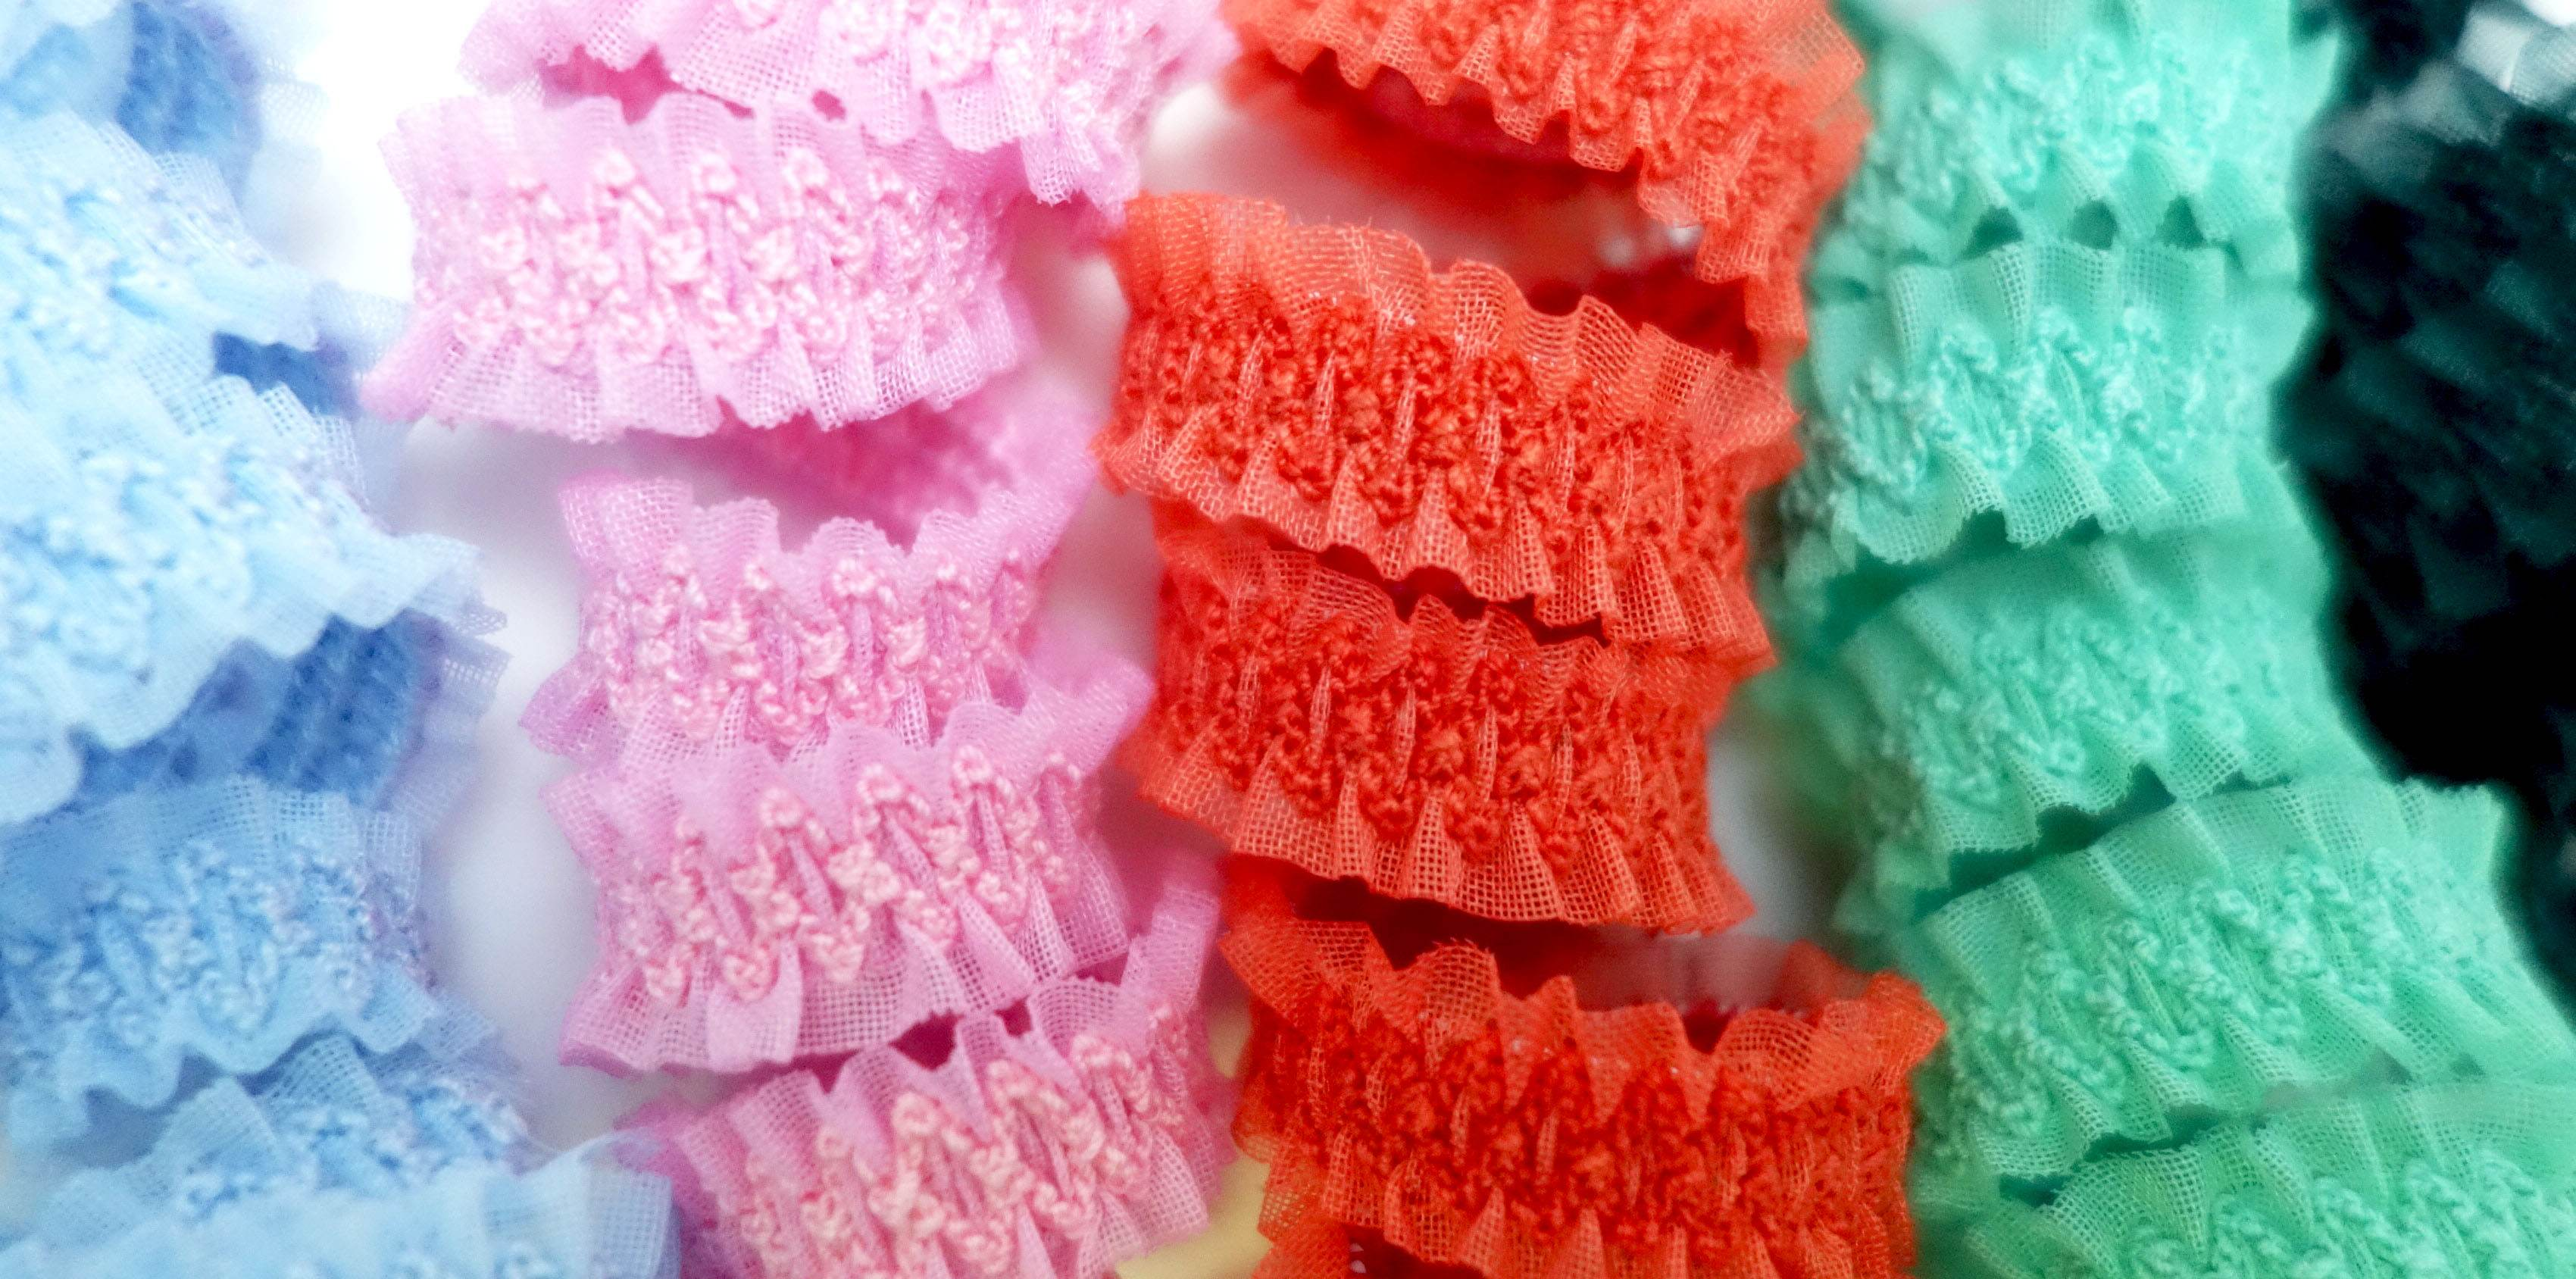 Ruffled organza ribbons with embroidered elastic band